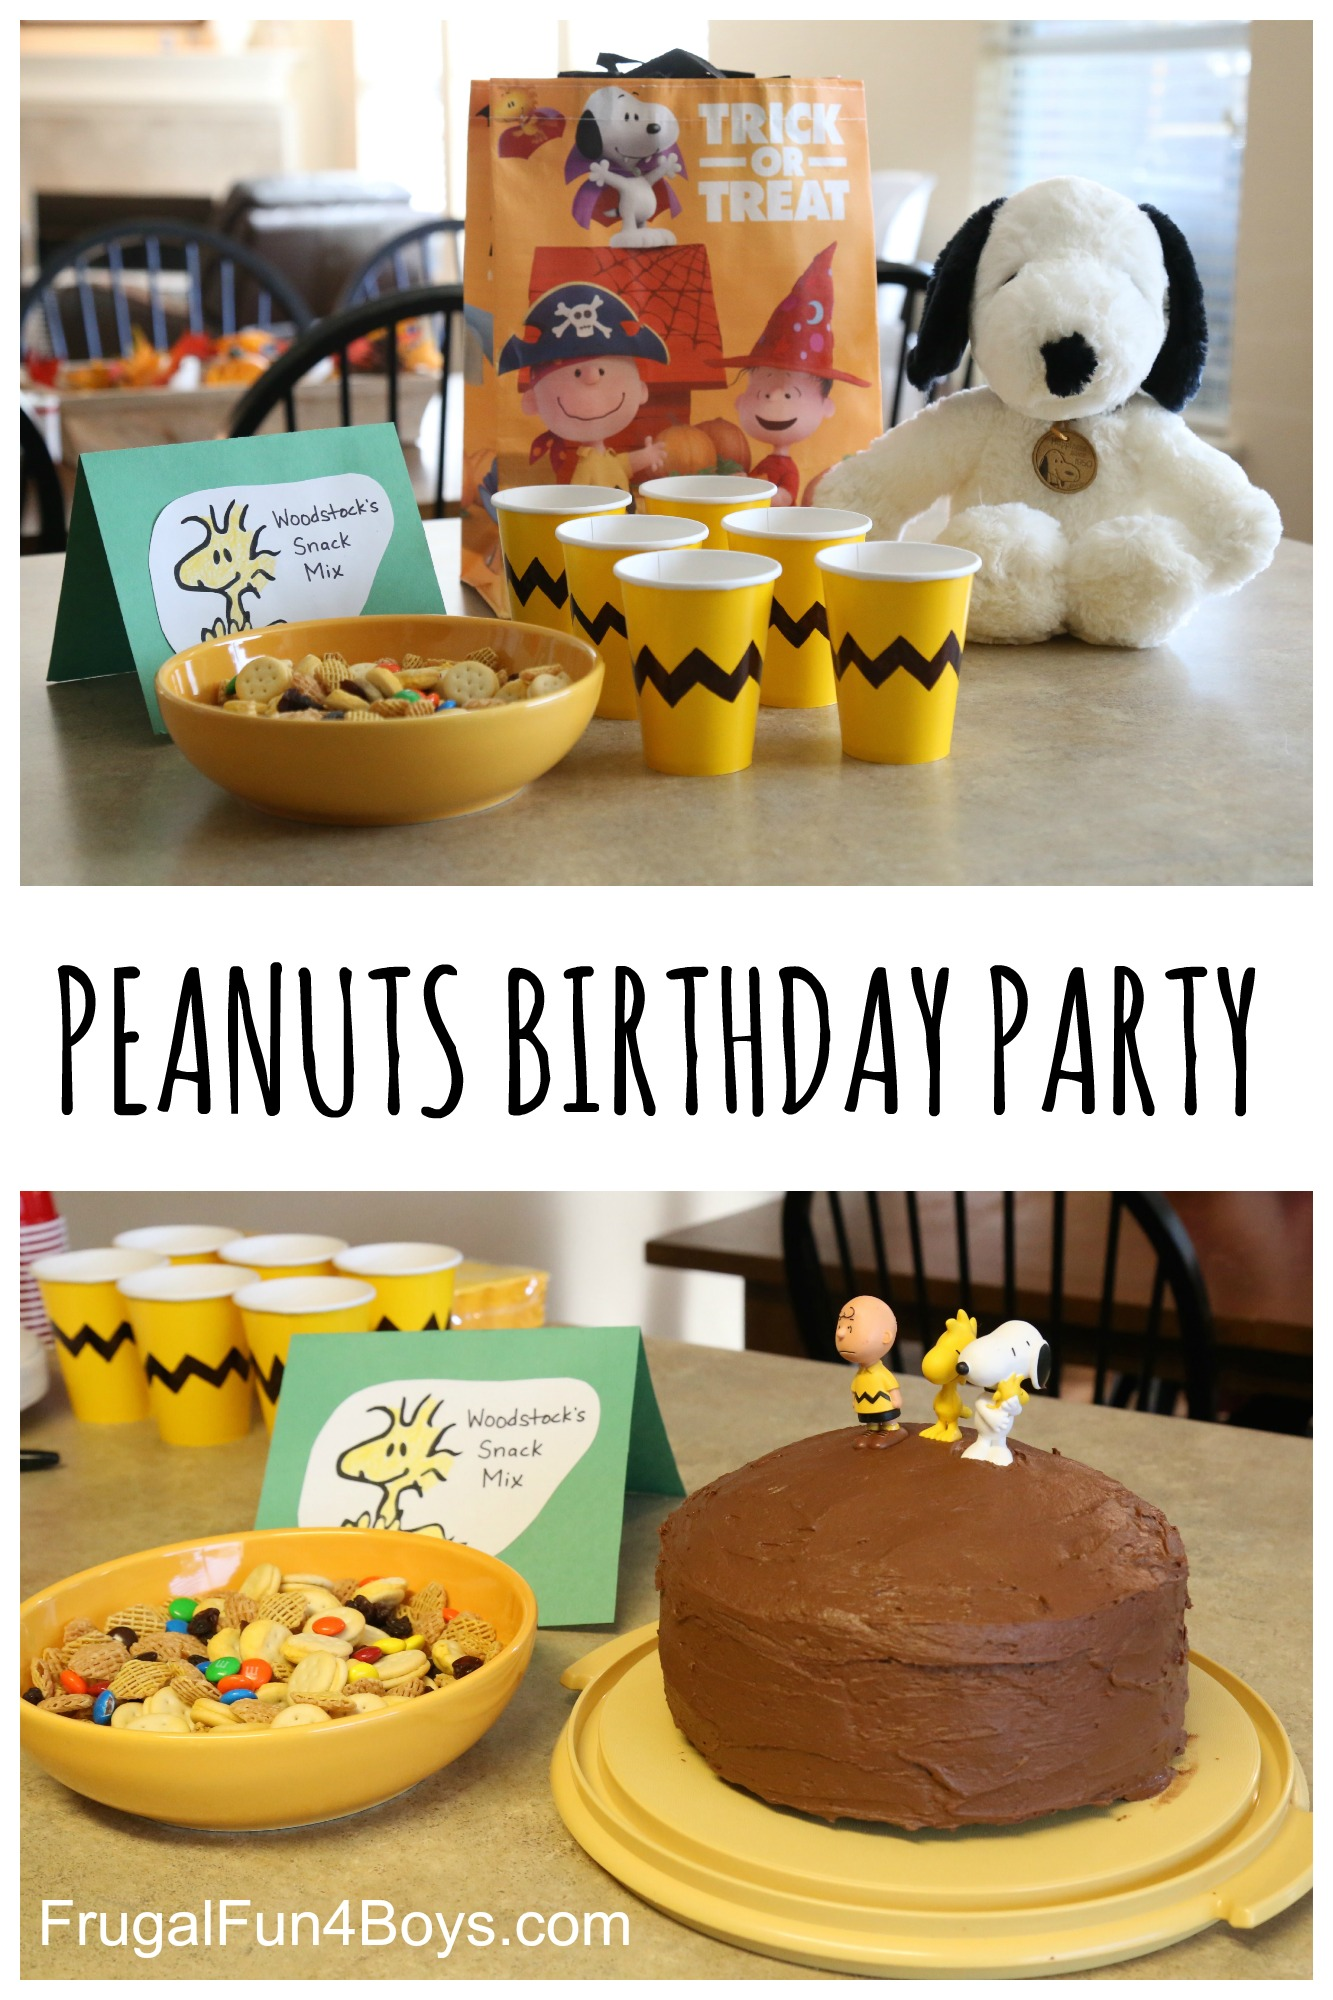 Fun Food Ideas for a Peanuts Birthday Party